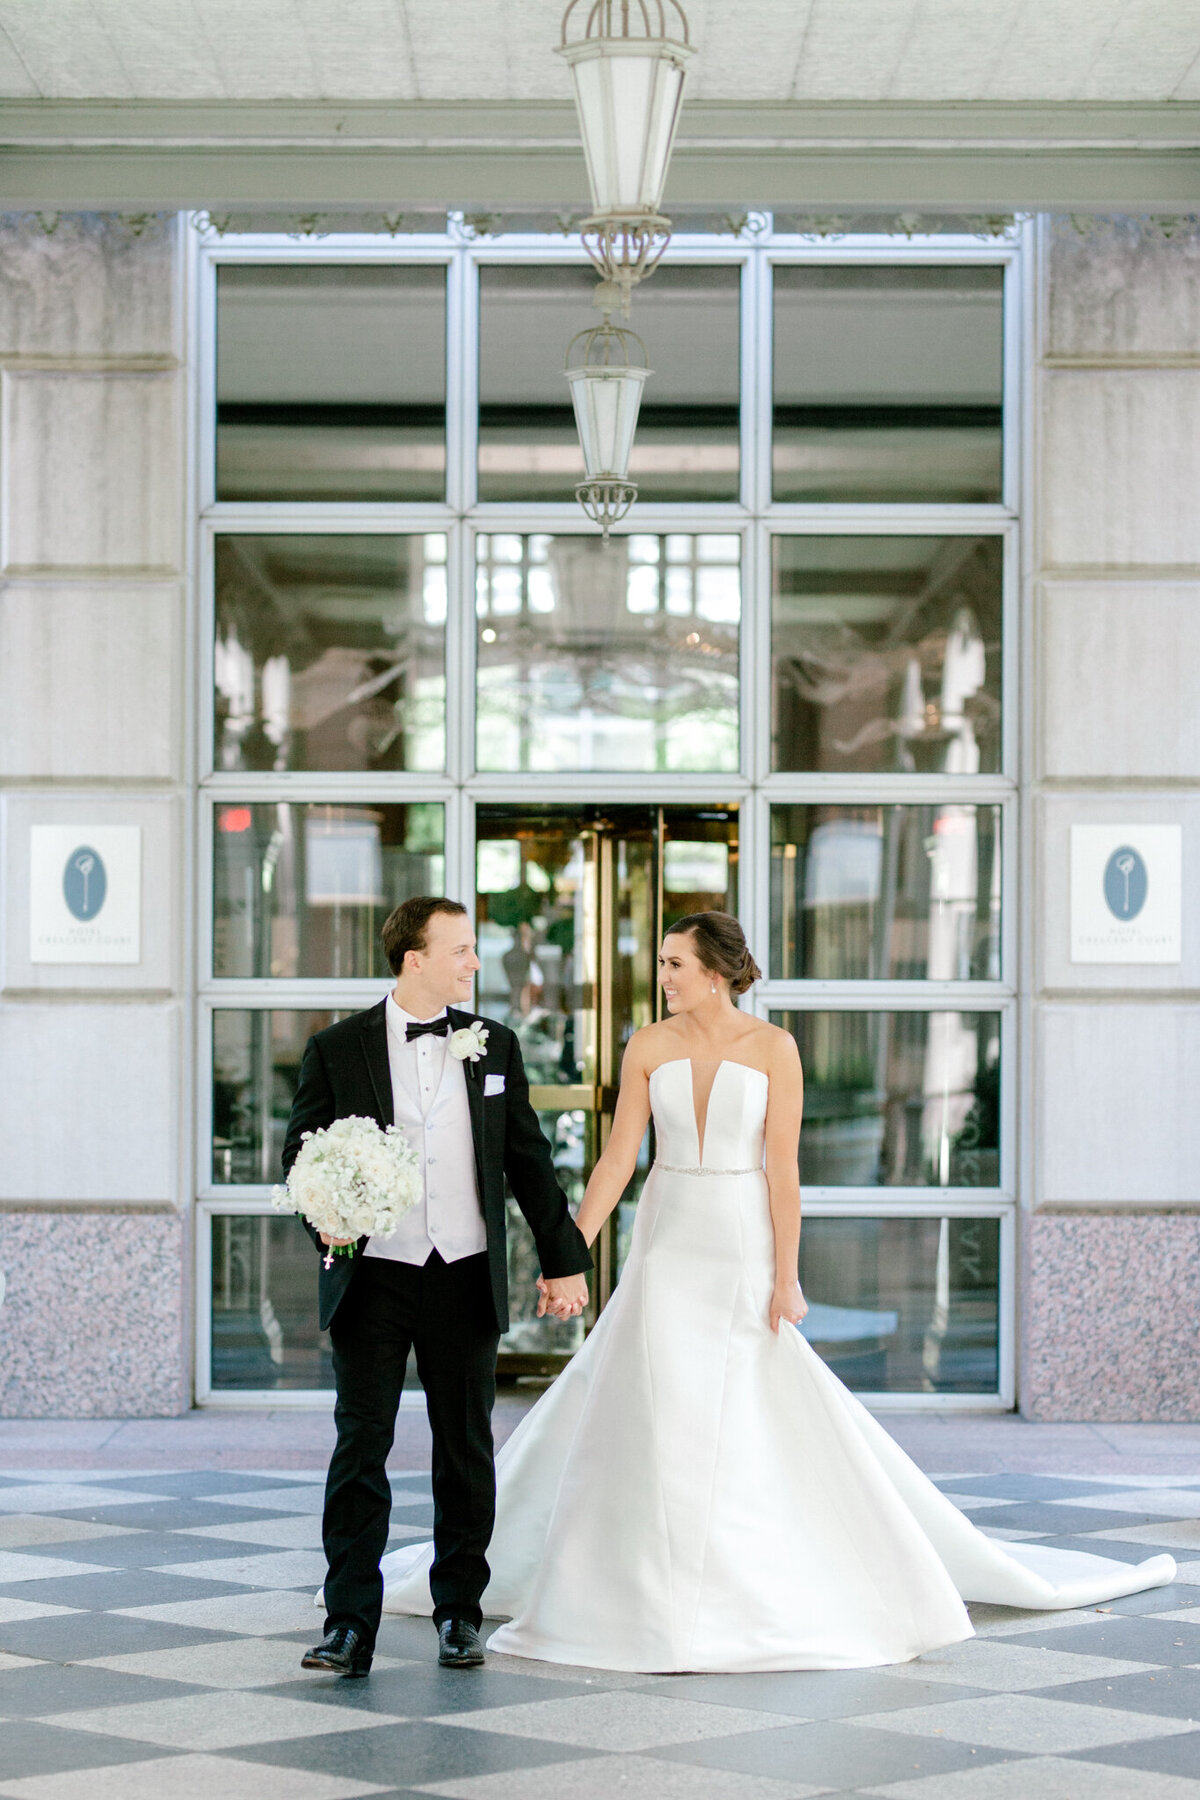 Wedding at the Crescent Court Hotel and Highland Park United Methodist Church in Dallas | Sami Kathryn Photography | DFW Wedding Photographer-66